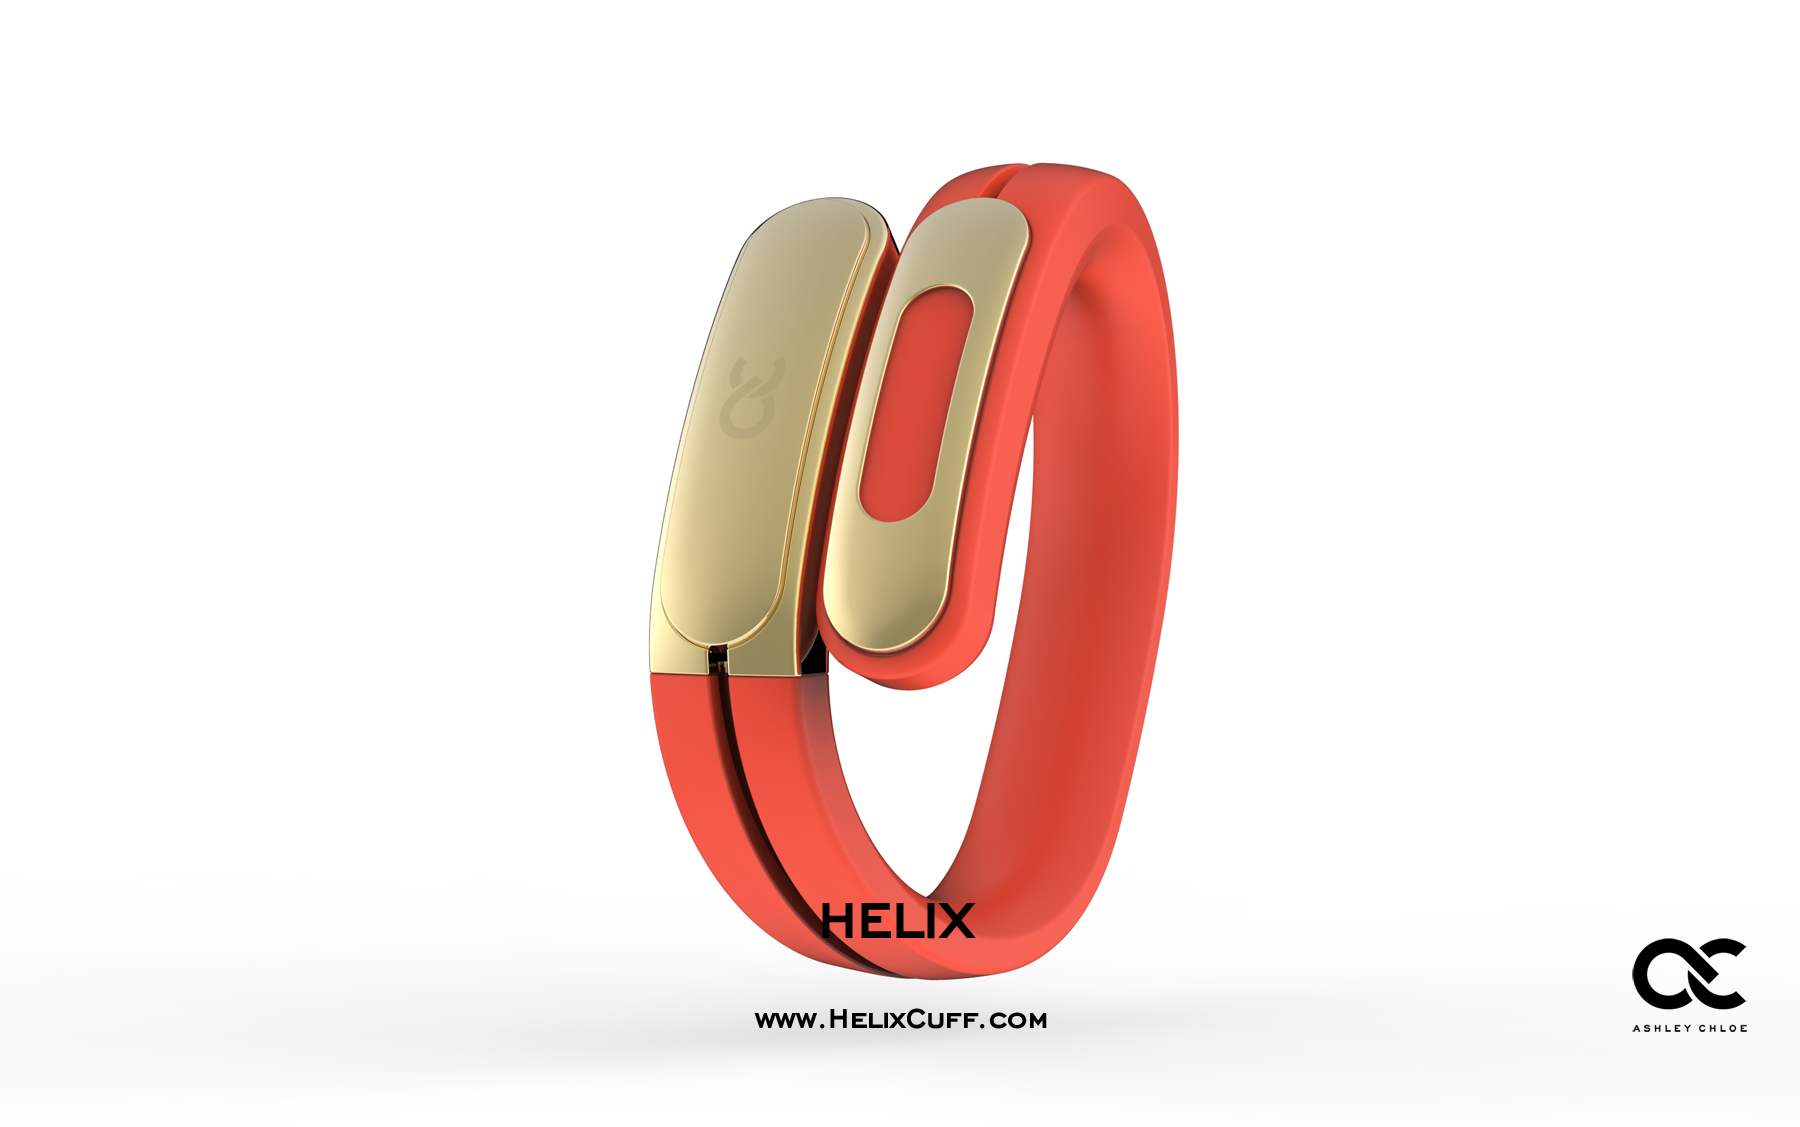 Helix_Cuff_56.png